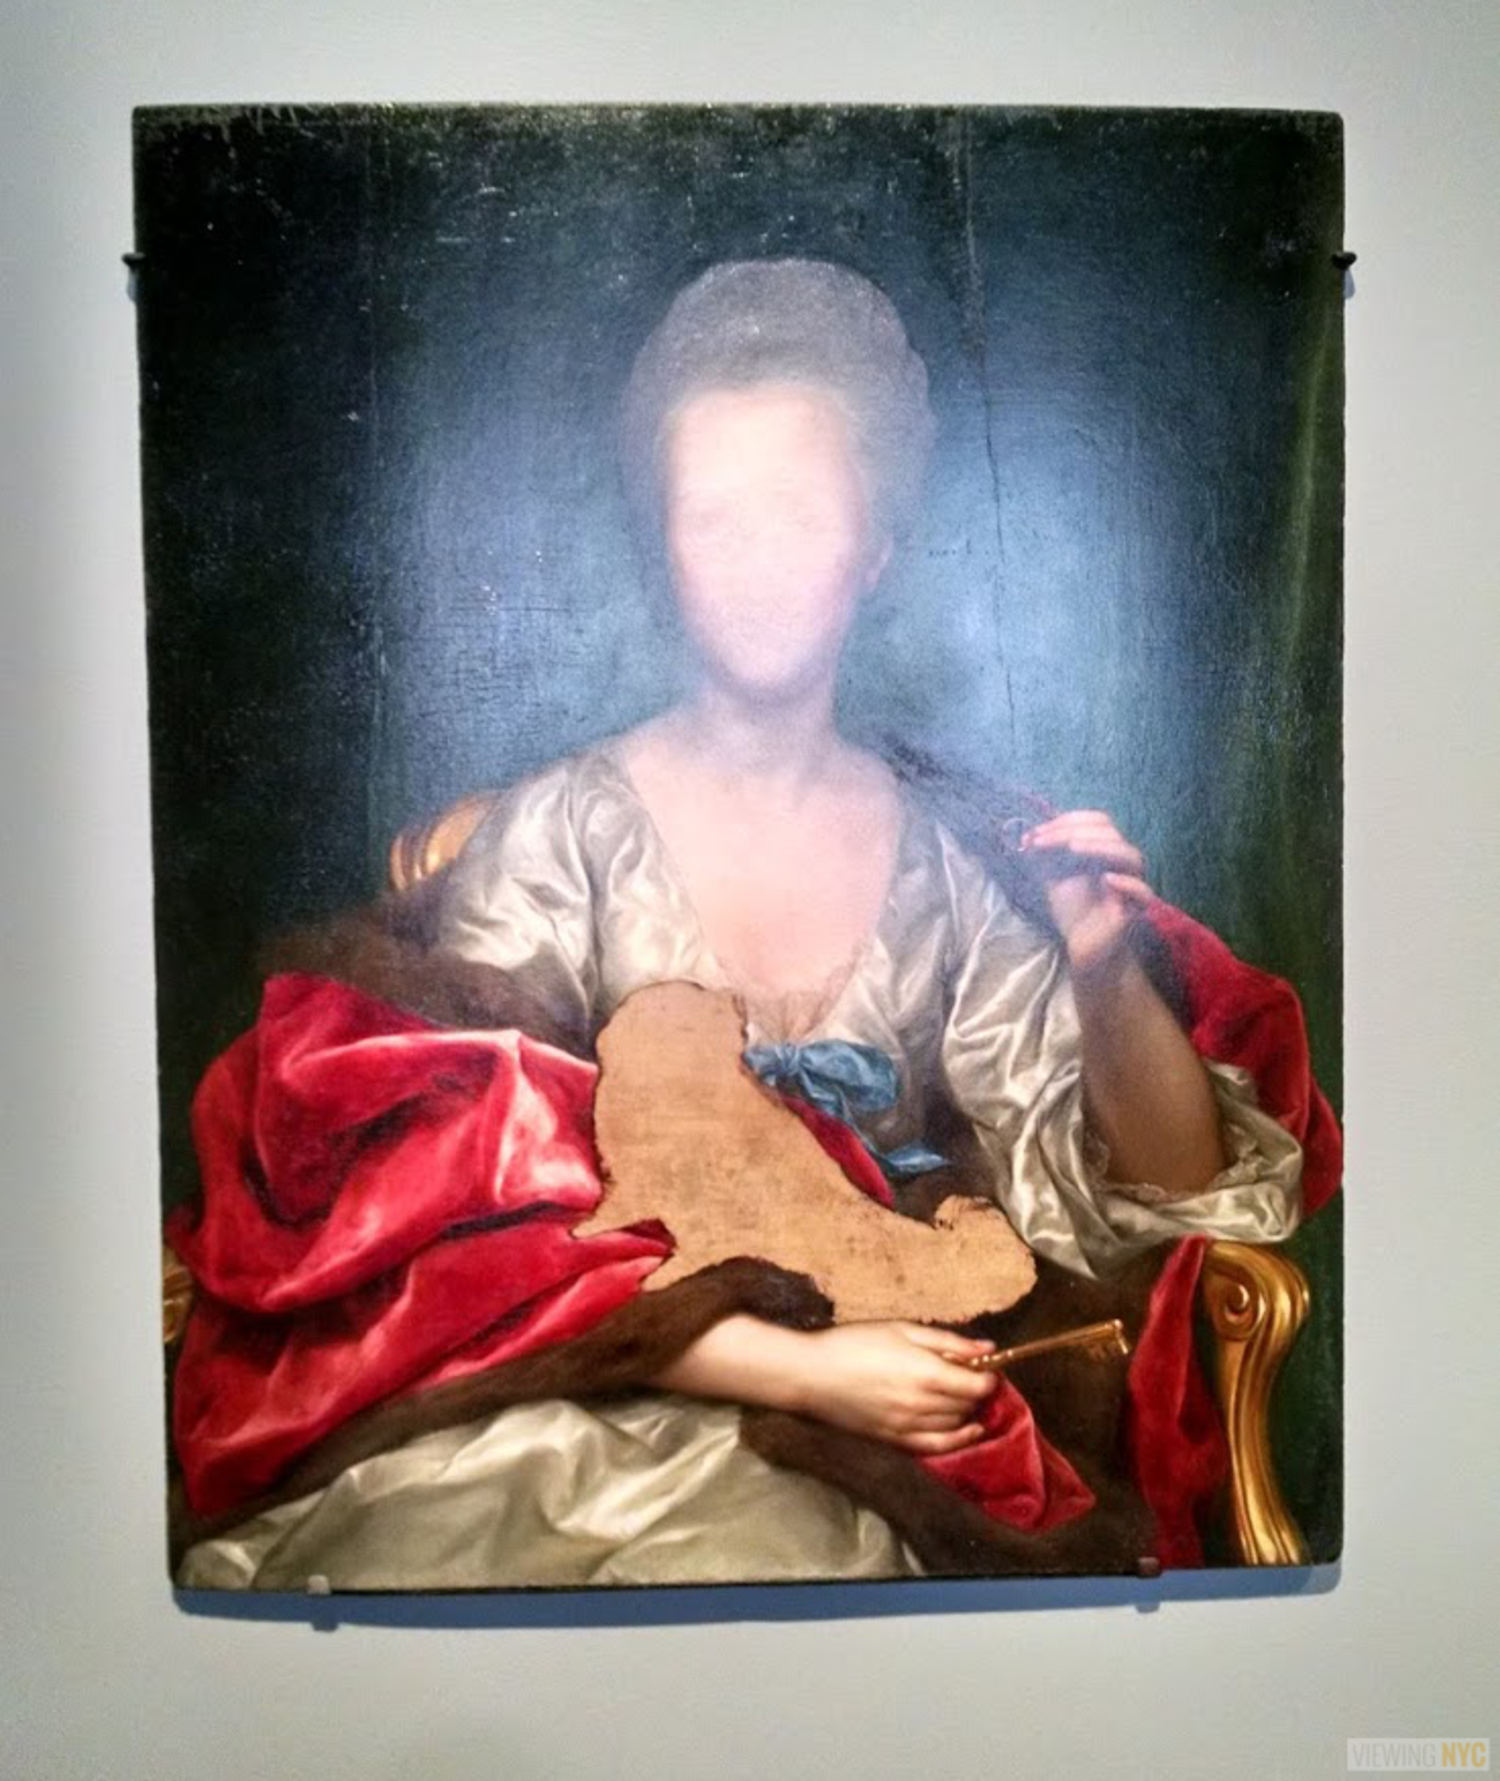 Unfinished Portrait | Unfinished: Thoughts LeftVisible, at the Met Brueur